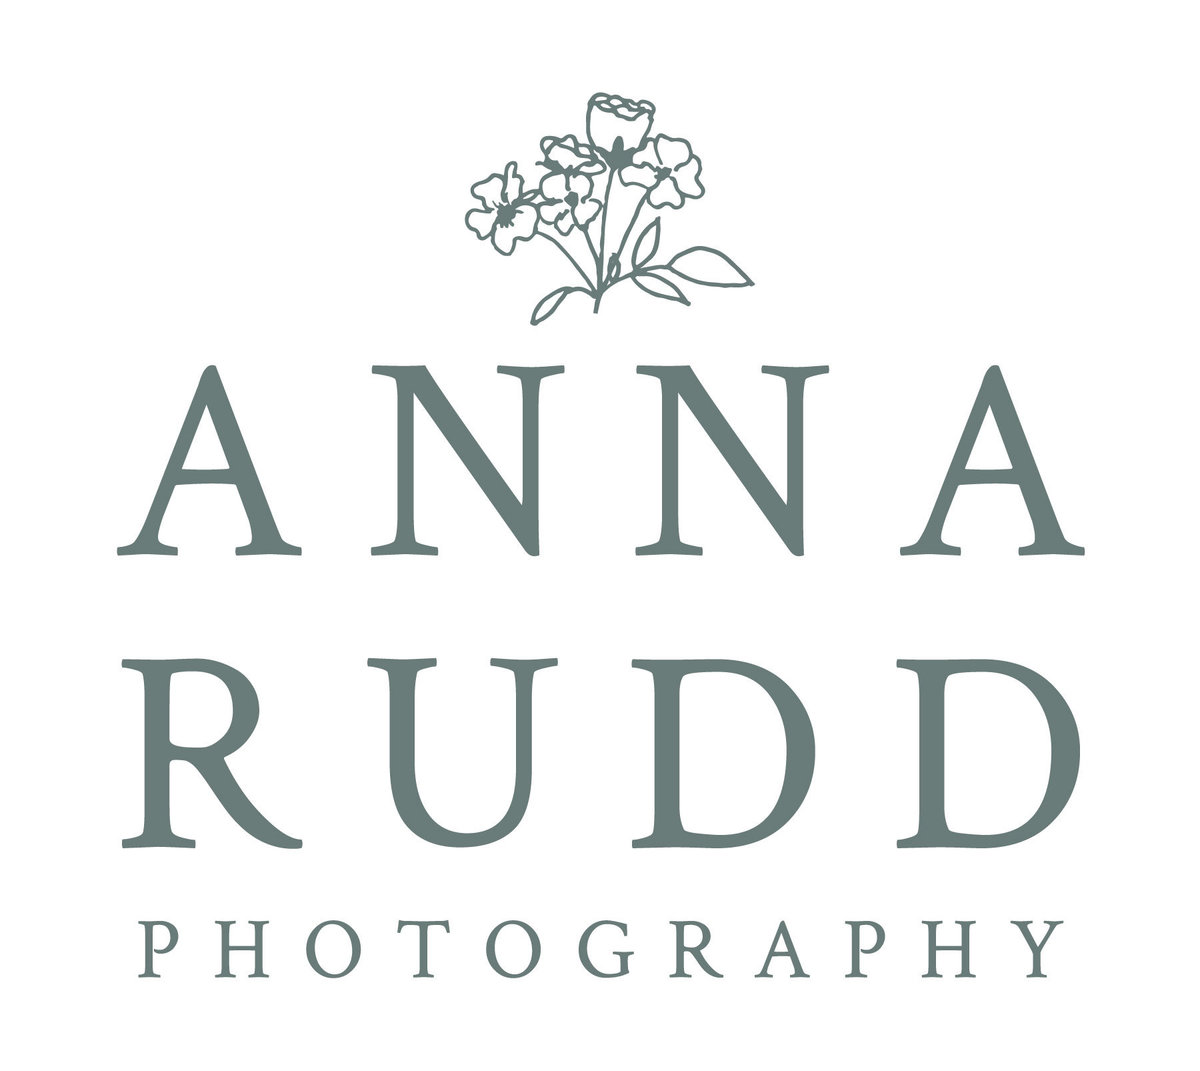 Anna-Rudd-Photography_Stacked-Logo_FINAL